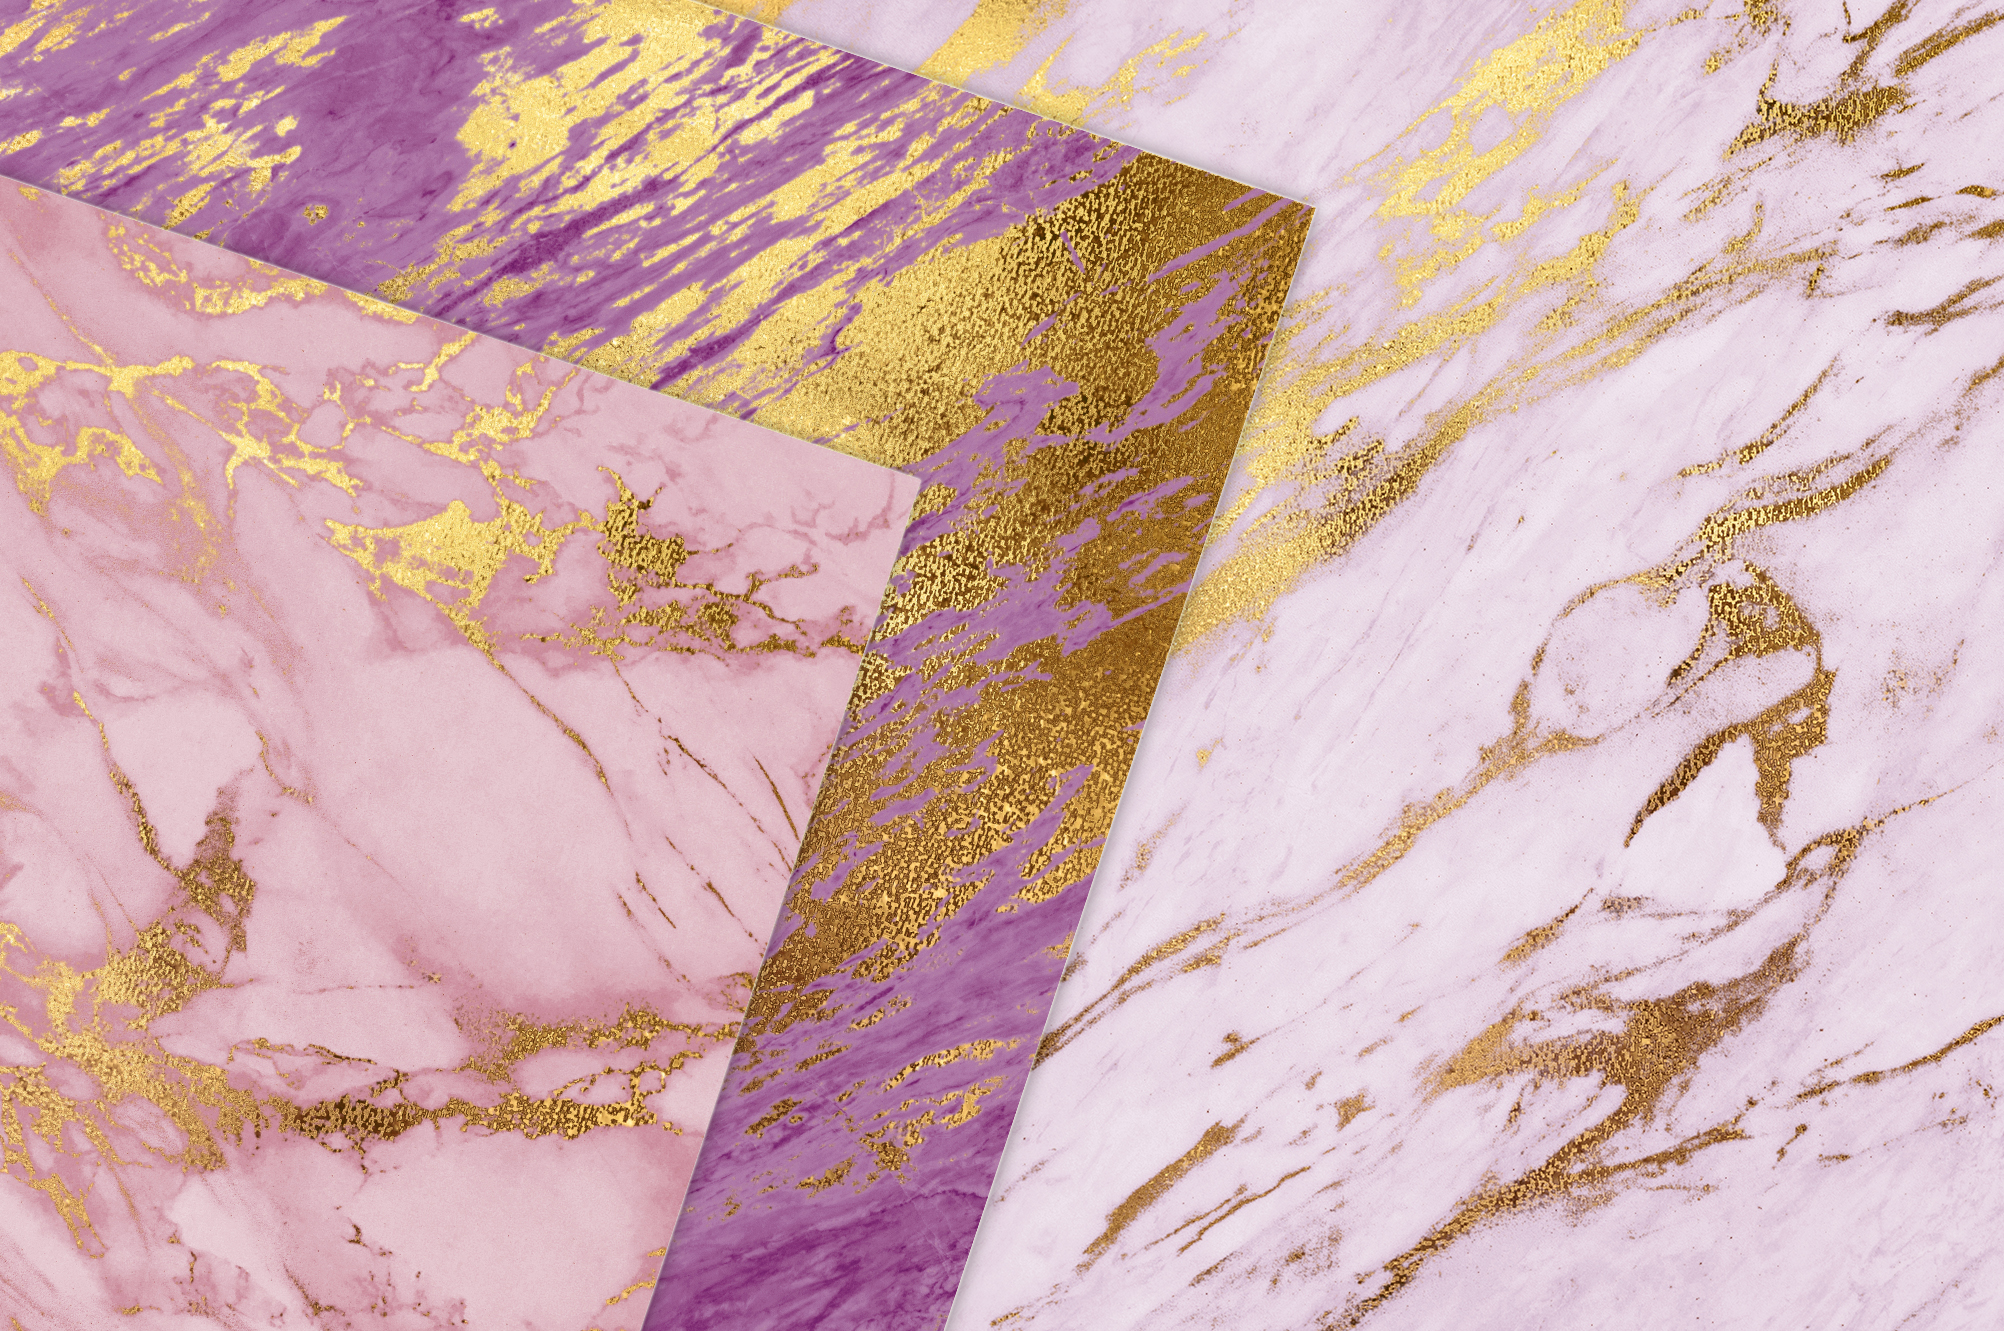 Rose Gold Marble Textures example image 2